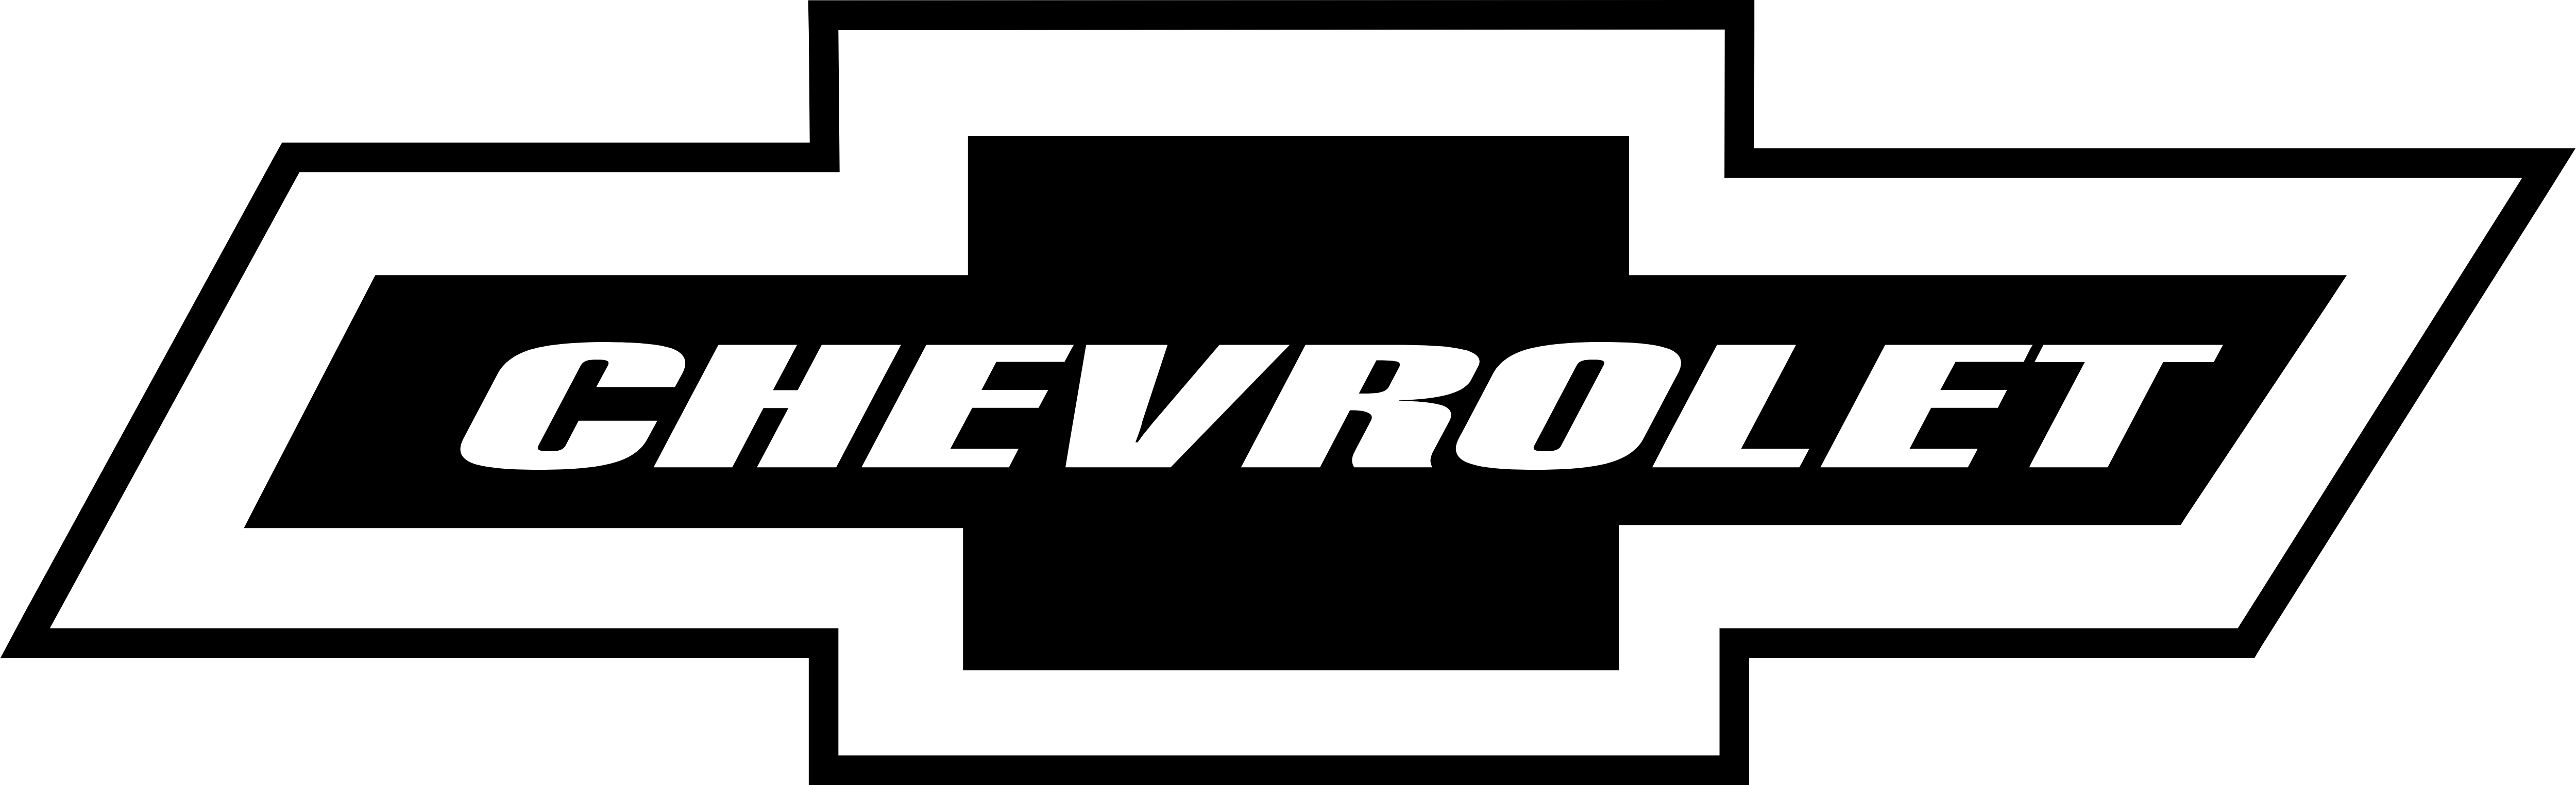 Chevrolet – Logos Download